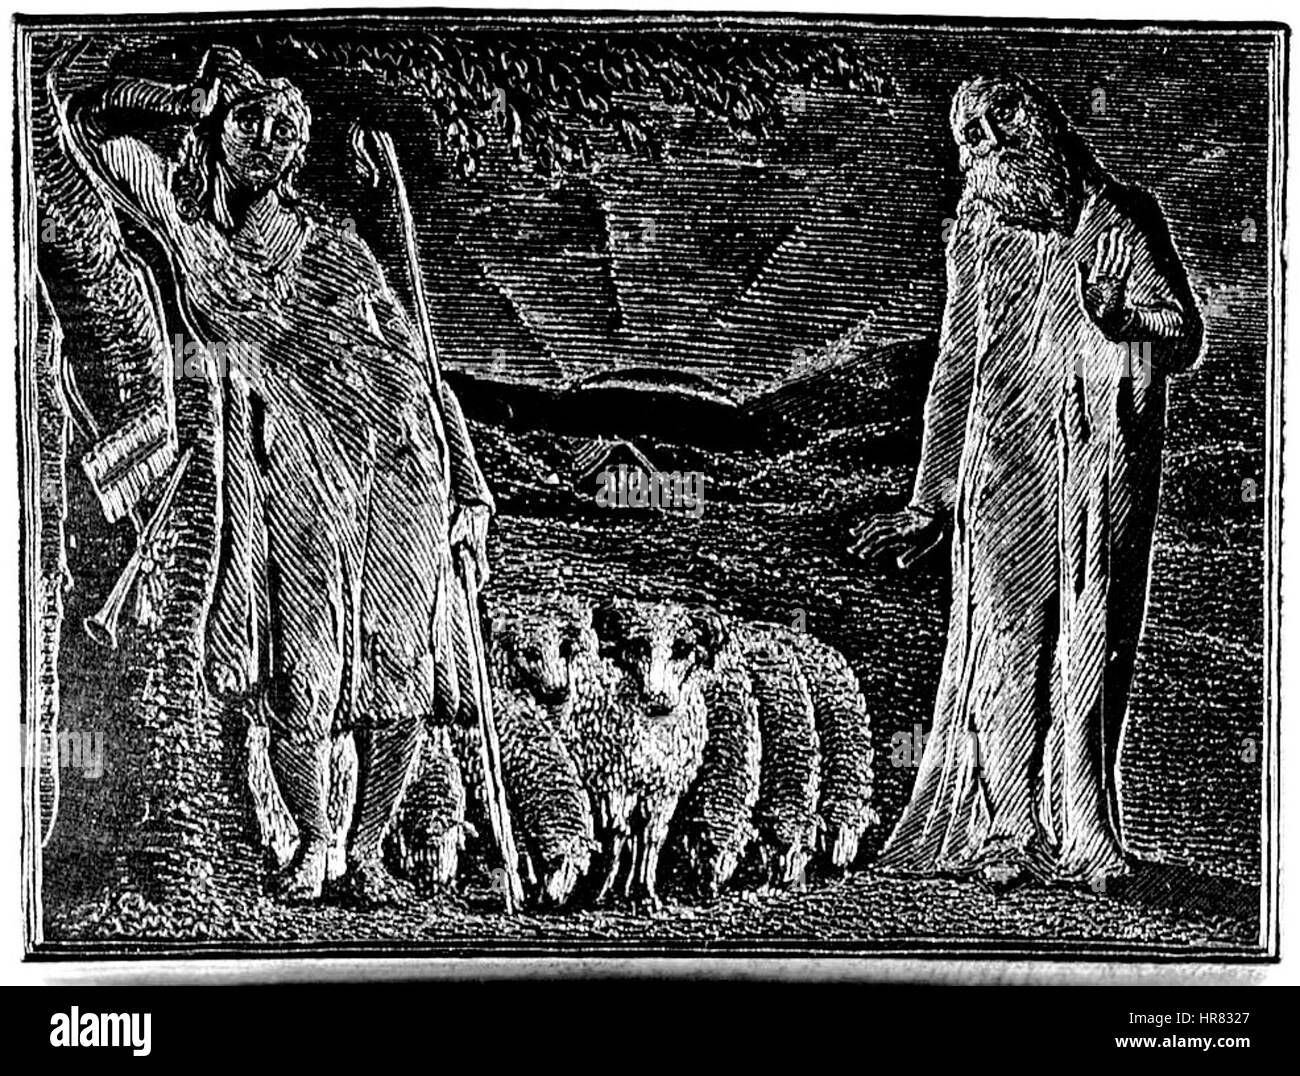 The Pastorals of Virgil, related materials, object 5 woodblock bb504 bm-woodengraving 5 300bw - Stock Image